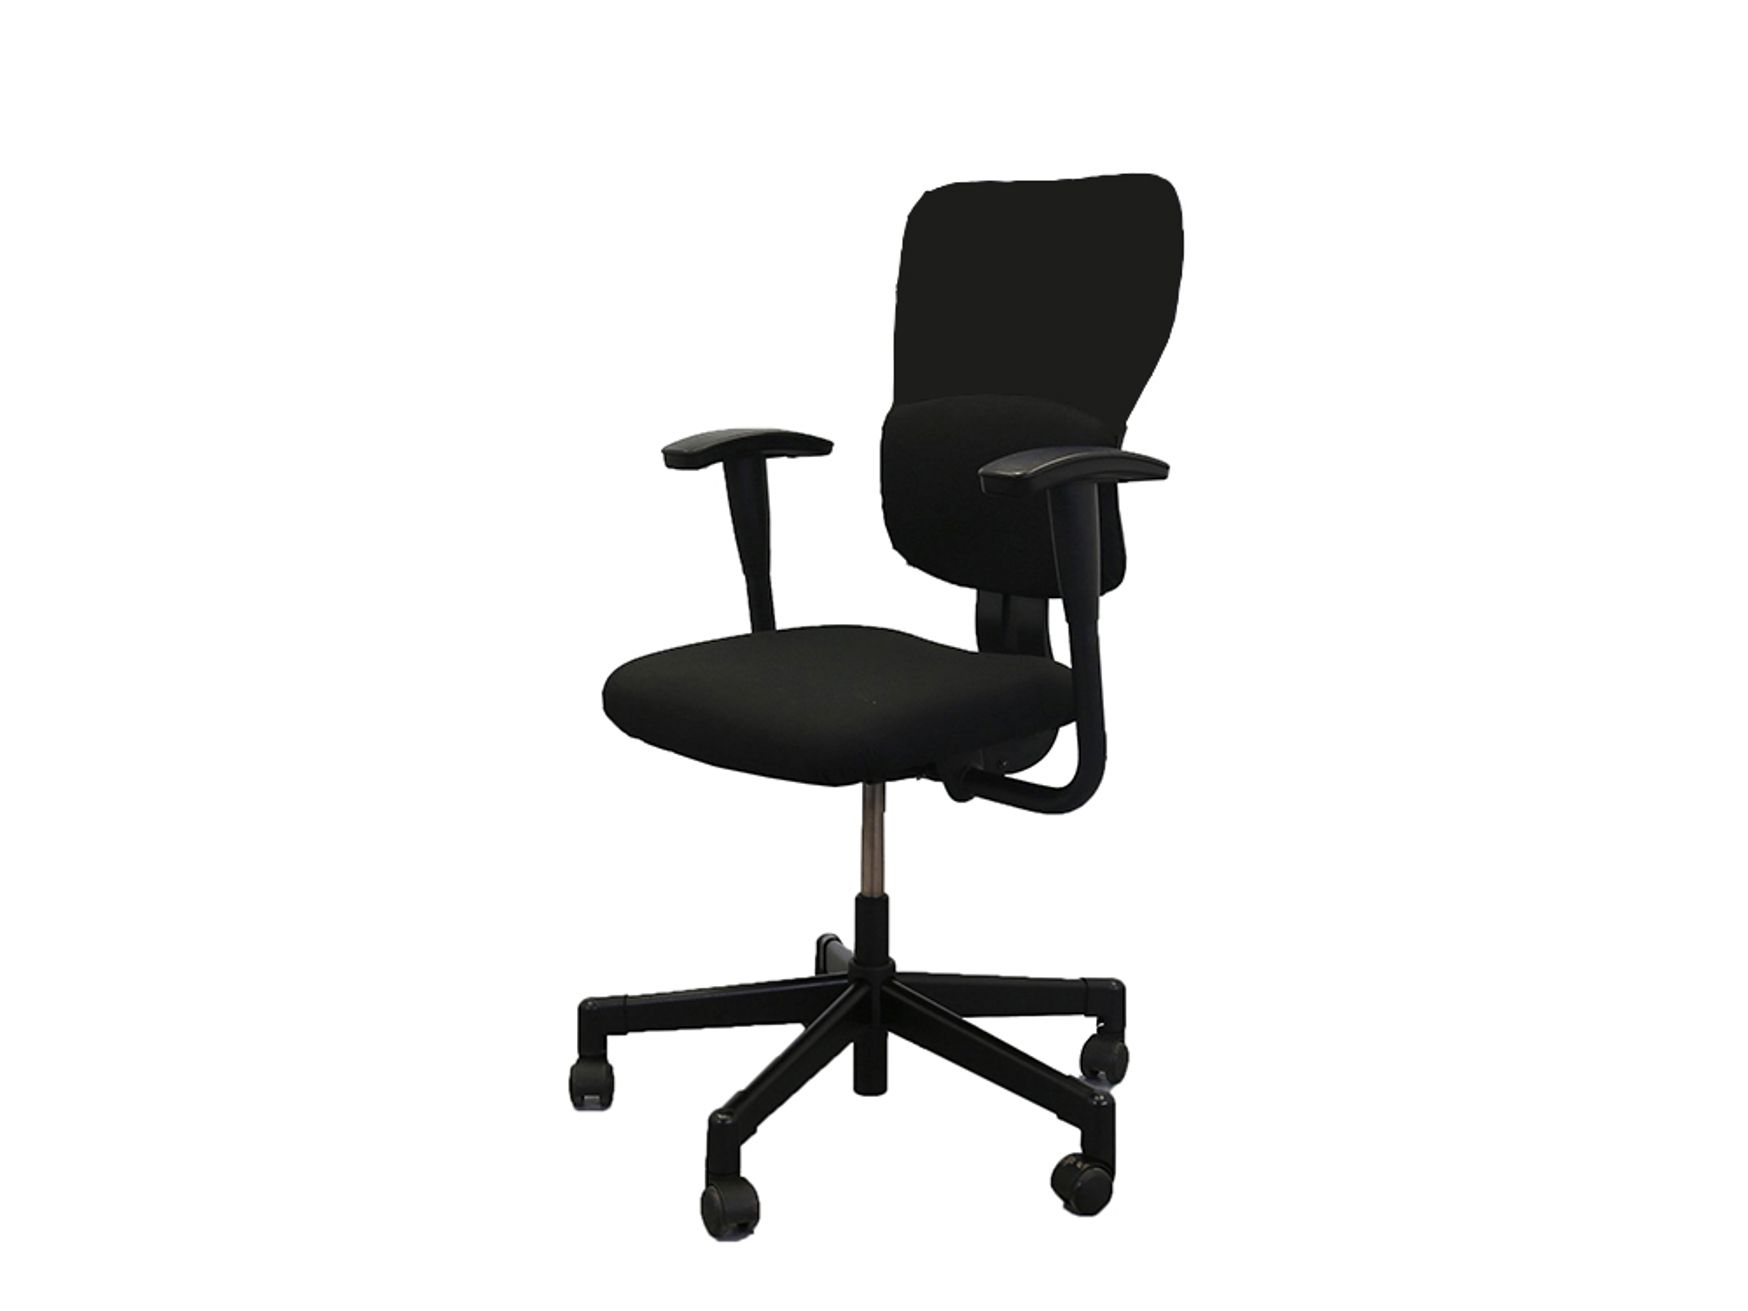 Excellent refurbished Steelcase 'Lets B' task chairs.